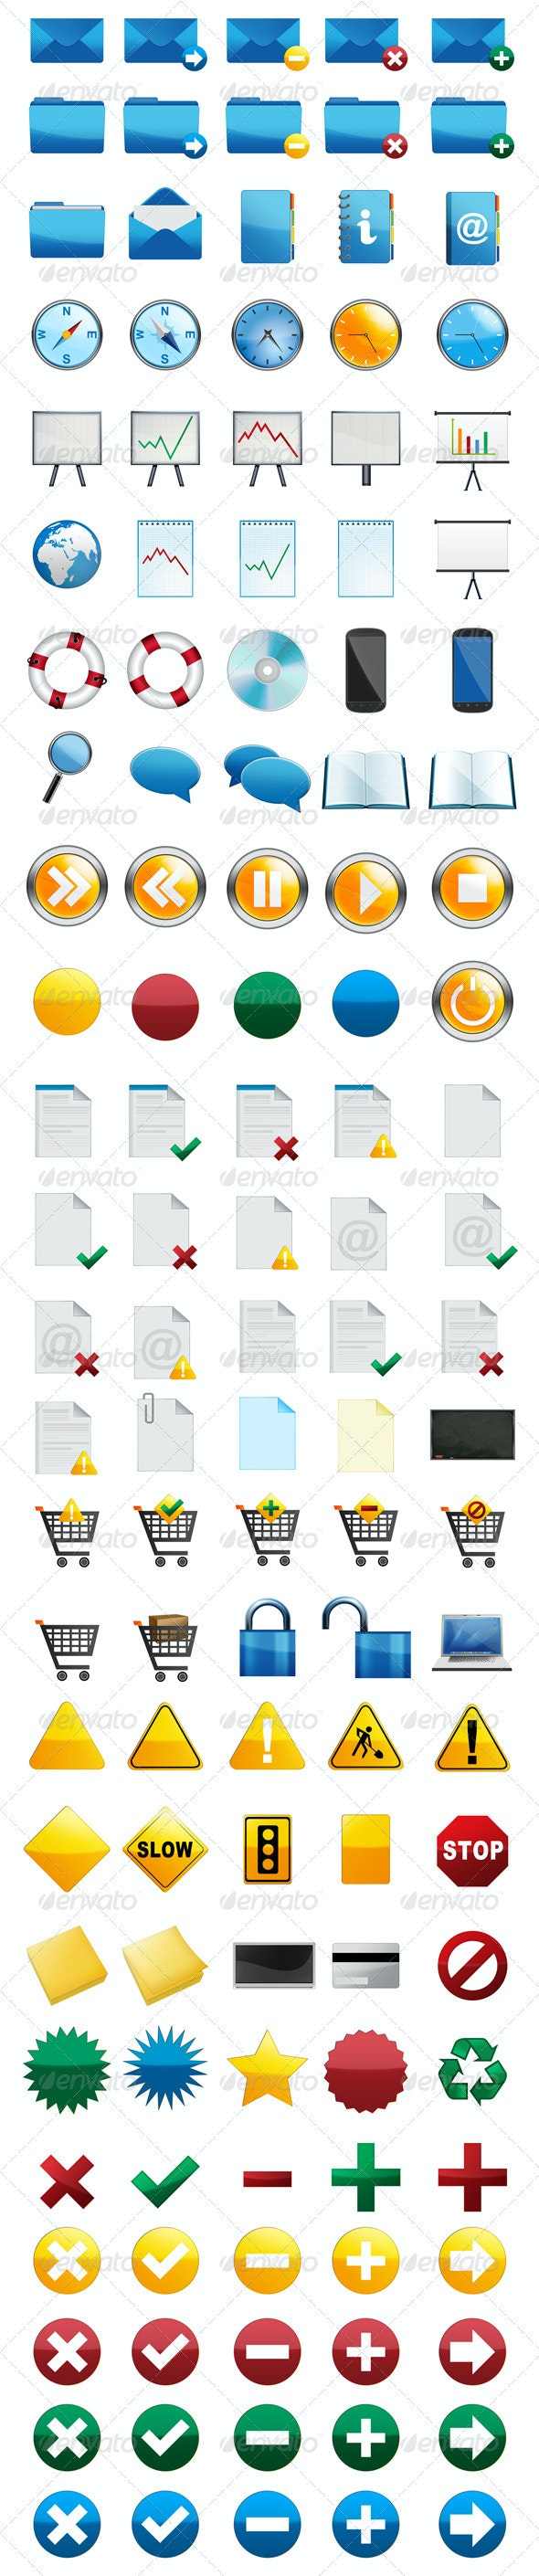 125 Mix of Icons - Web Icons